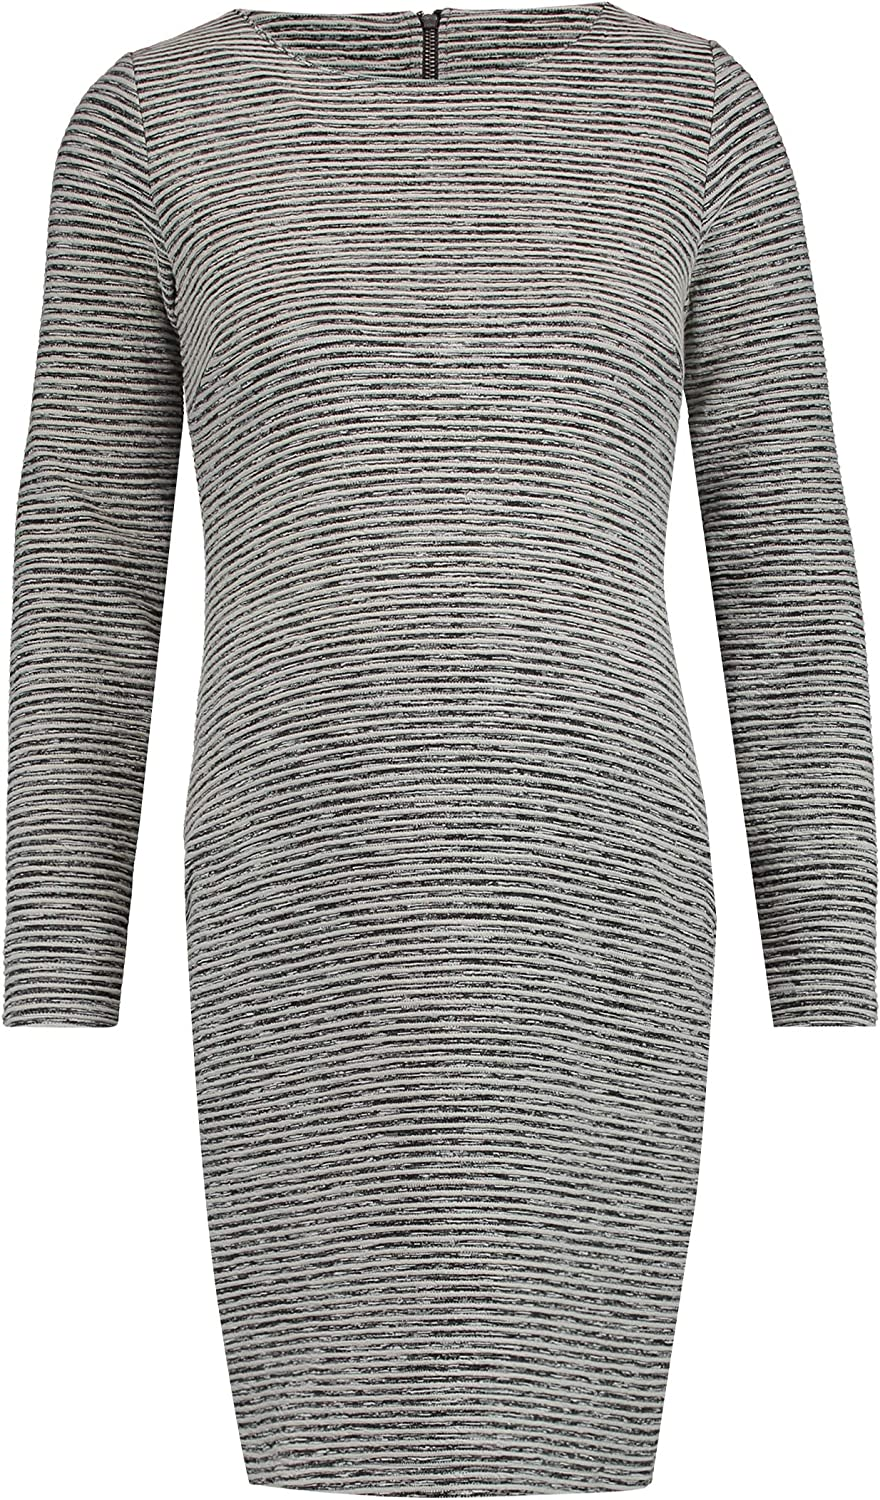 Noppies Damen Dress Ls Heather Kleid